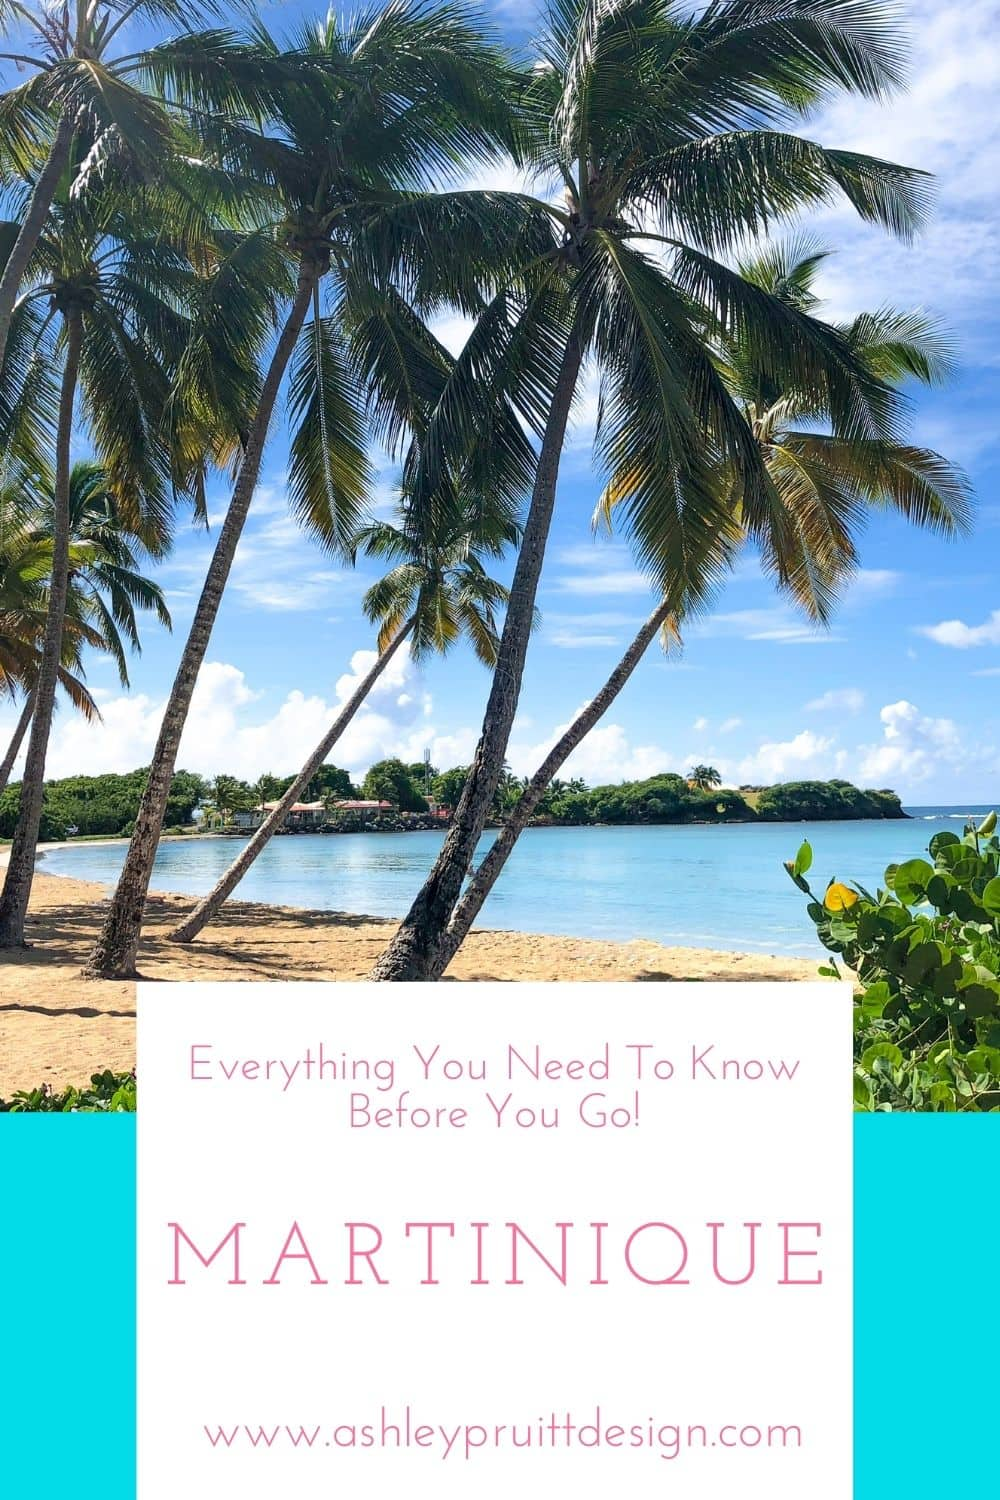 Everything You Need To Know Before You Go To Martinique